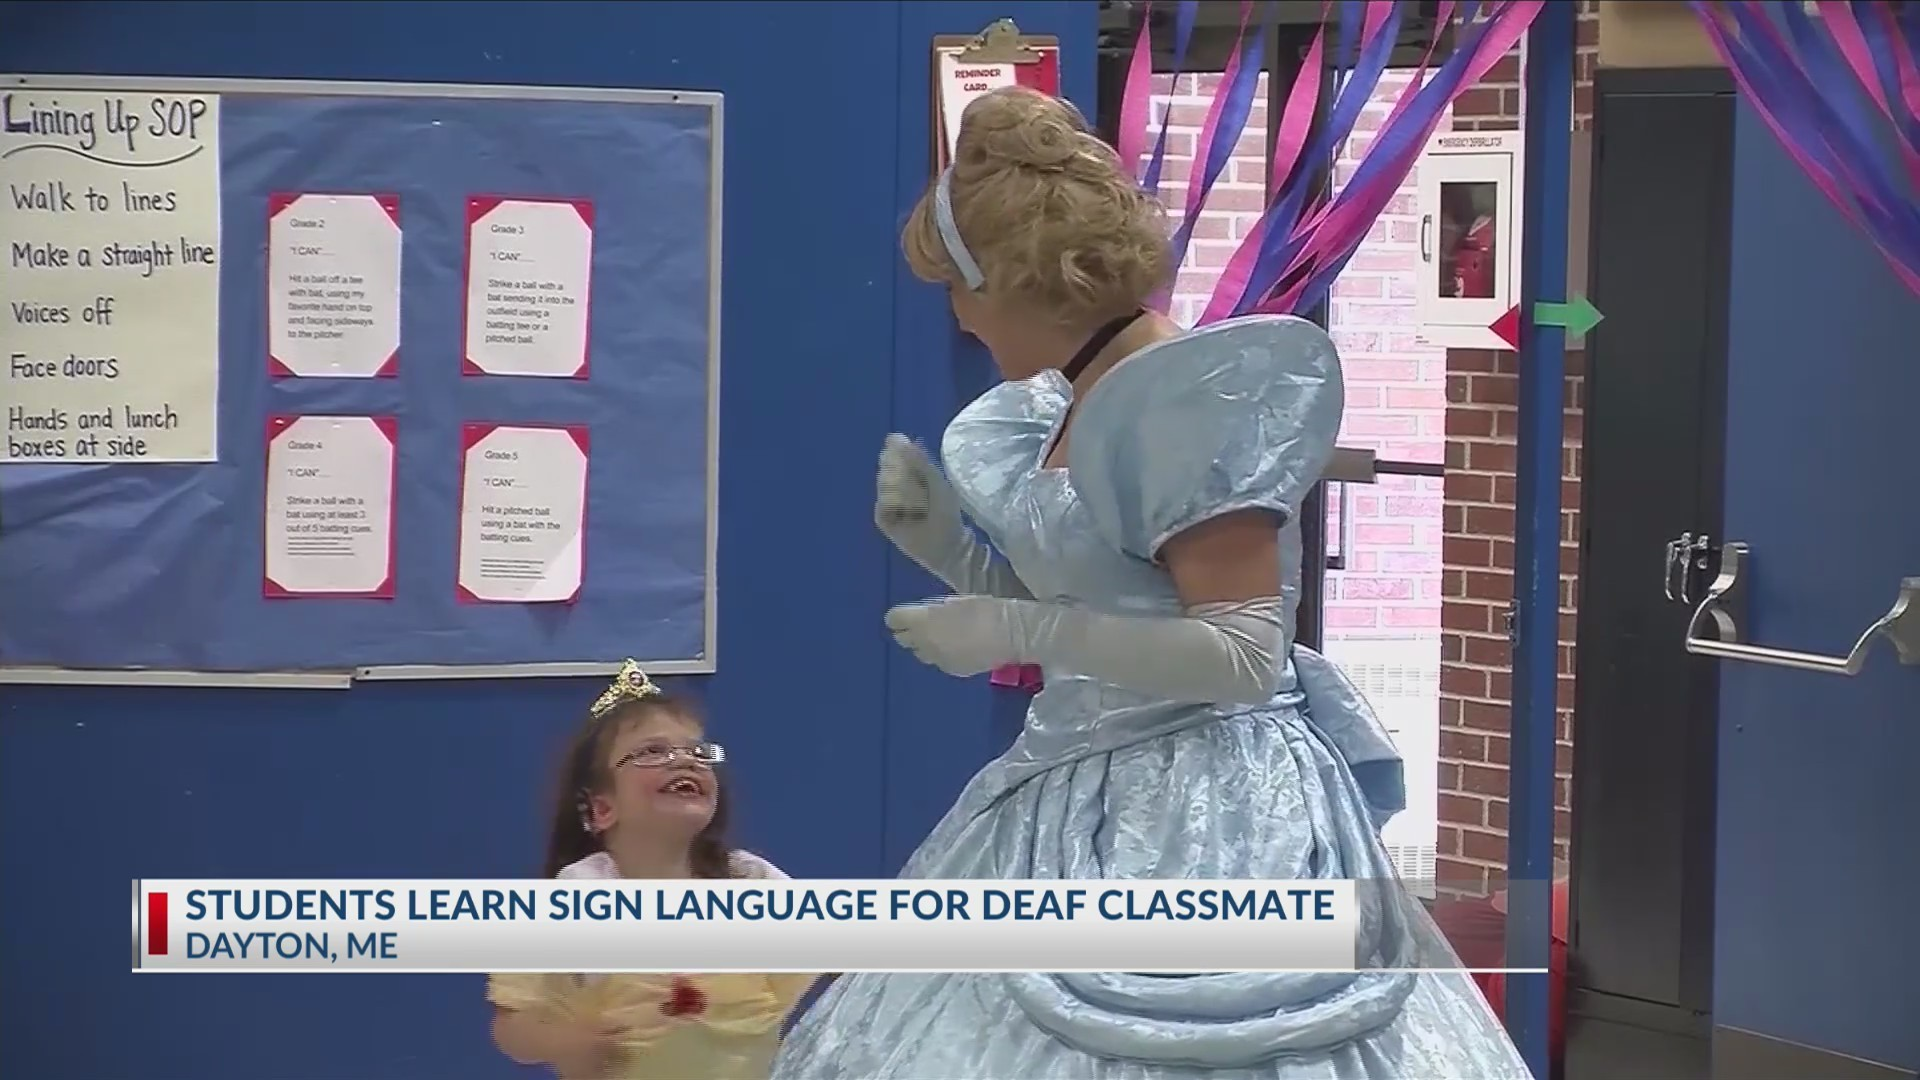 Students learn sign language for deaf classmate